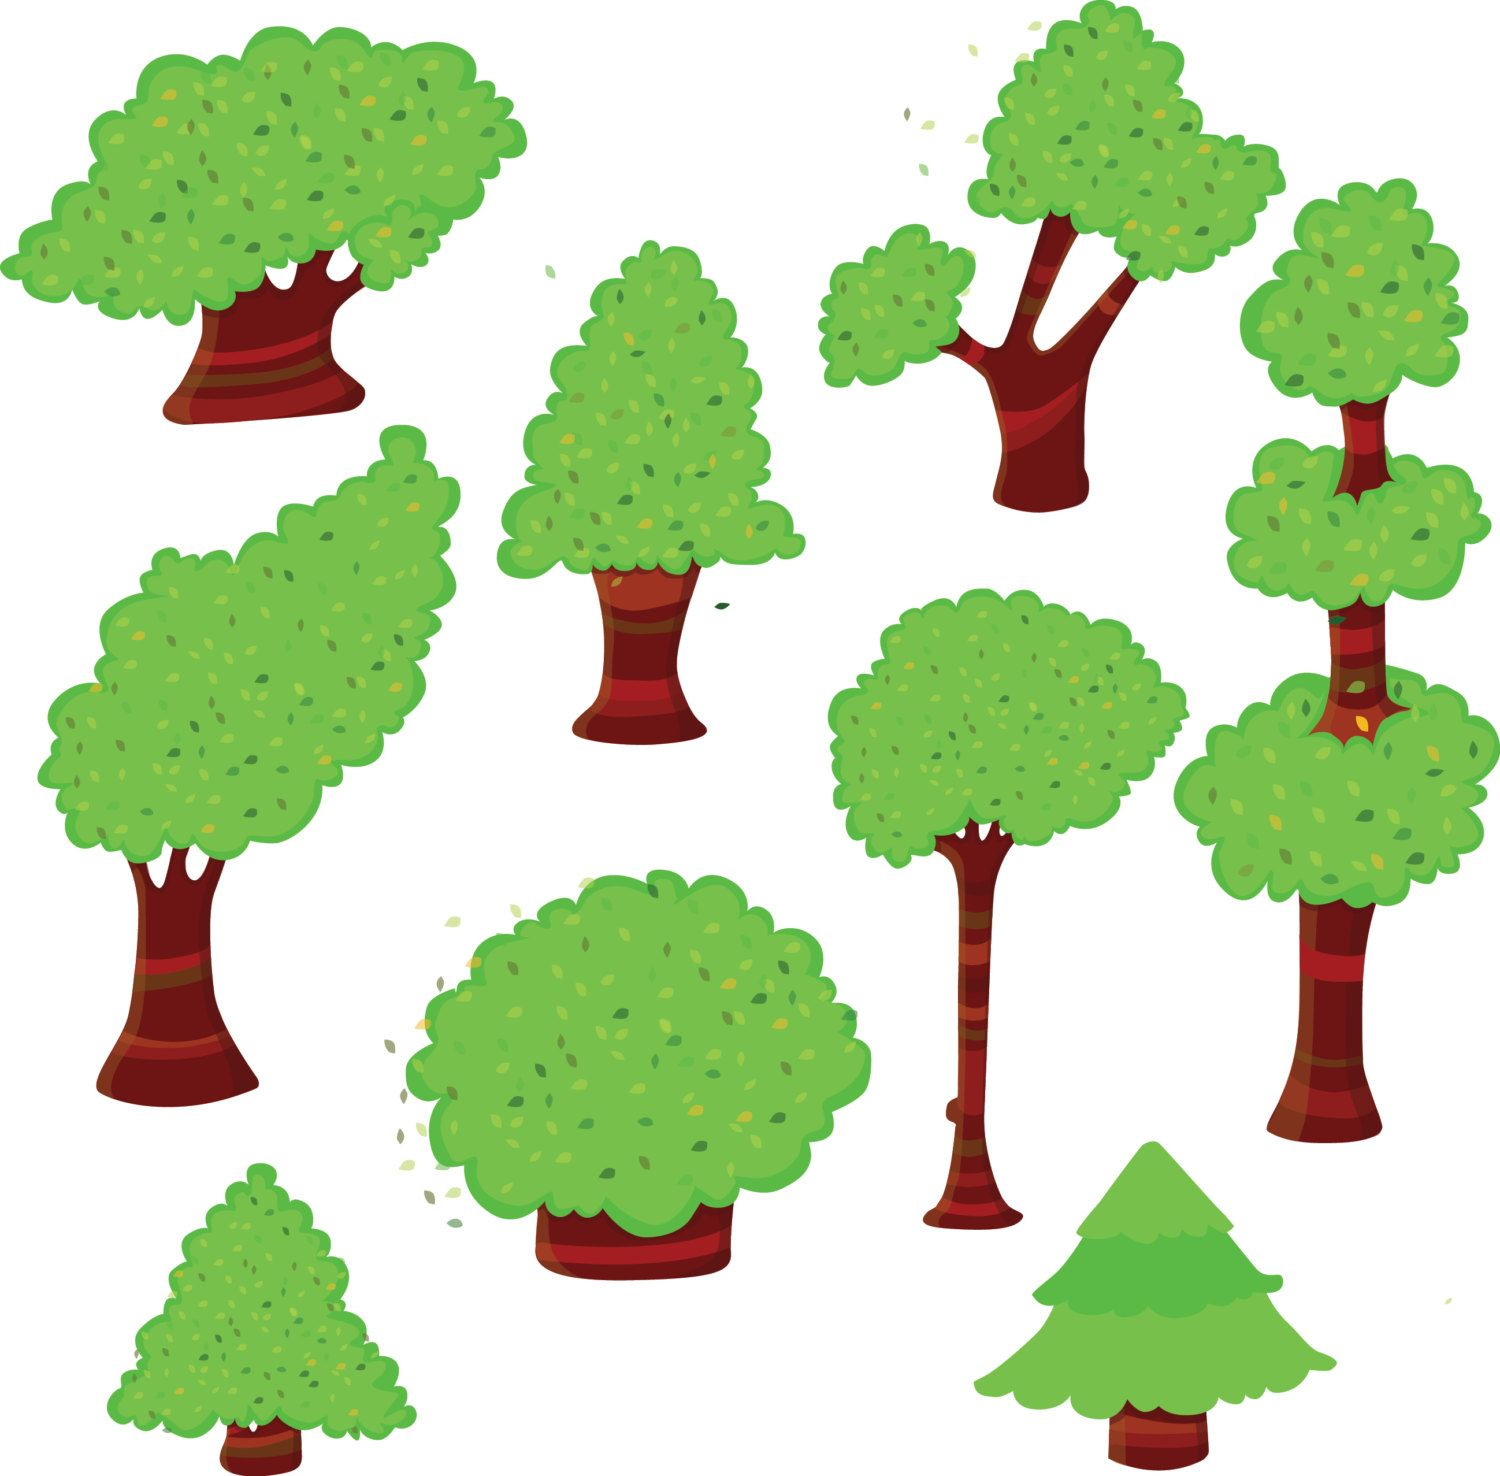 trees clipart green trees clipart tree clipart woodland clip art rh pinterest co uk forest clip art background forest clip art background